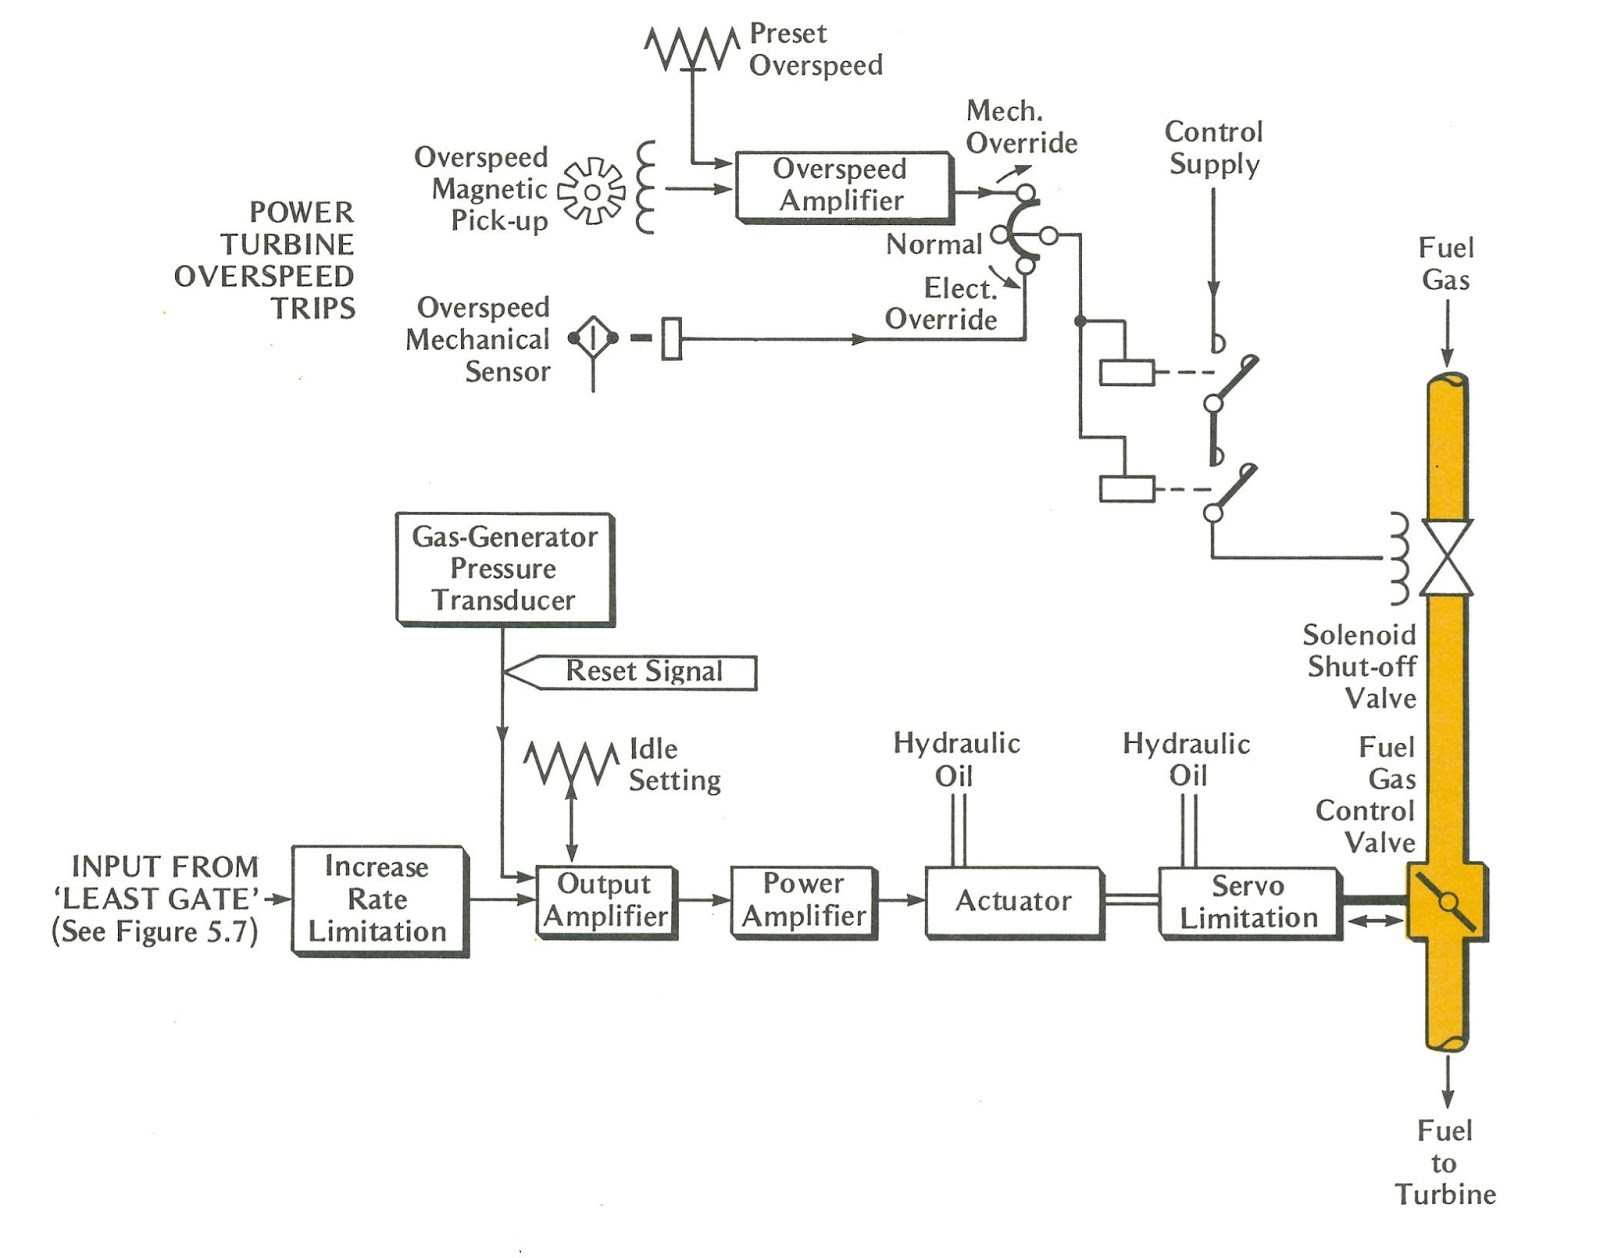 hight resolution of wiring diagram for steam iron wiring diagram wiring diagram for steam iron